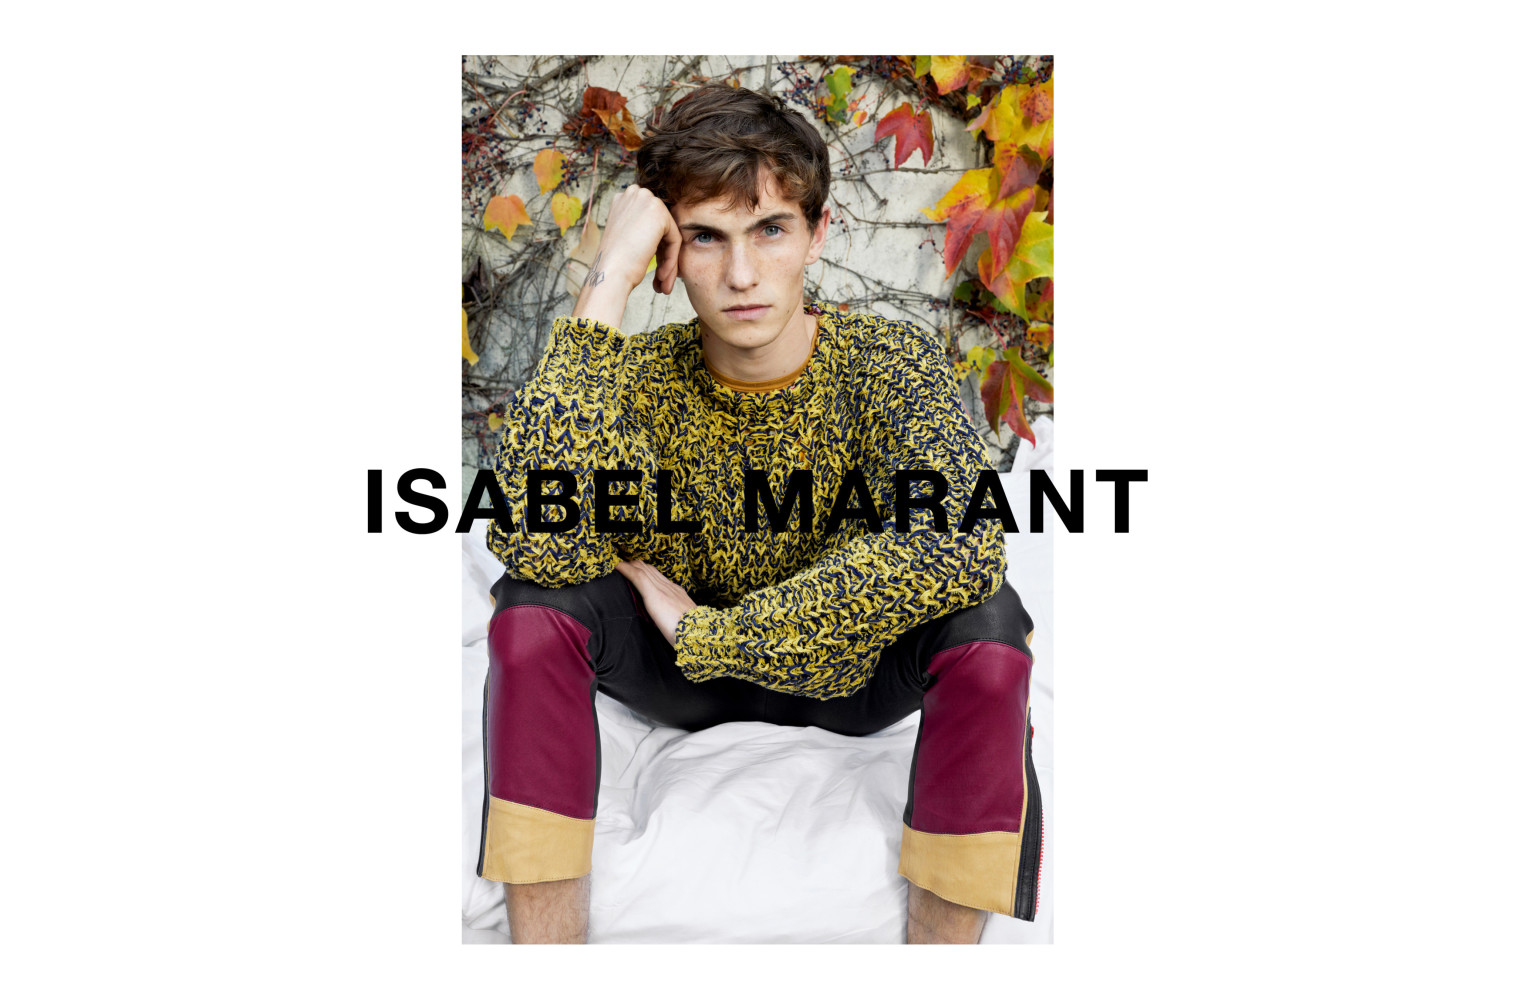 Isabel Marant SS18 campaign